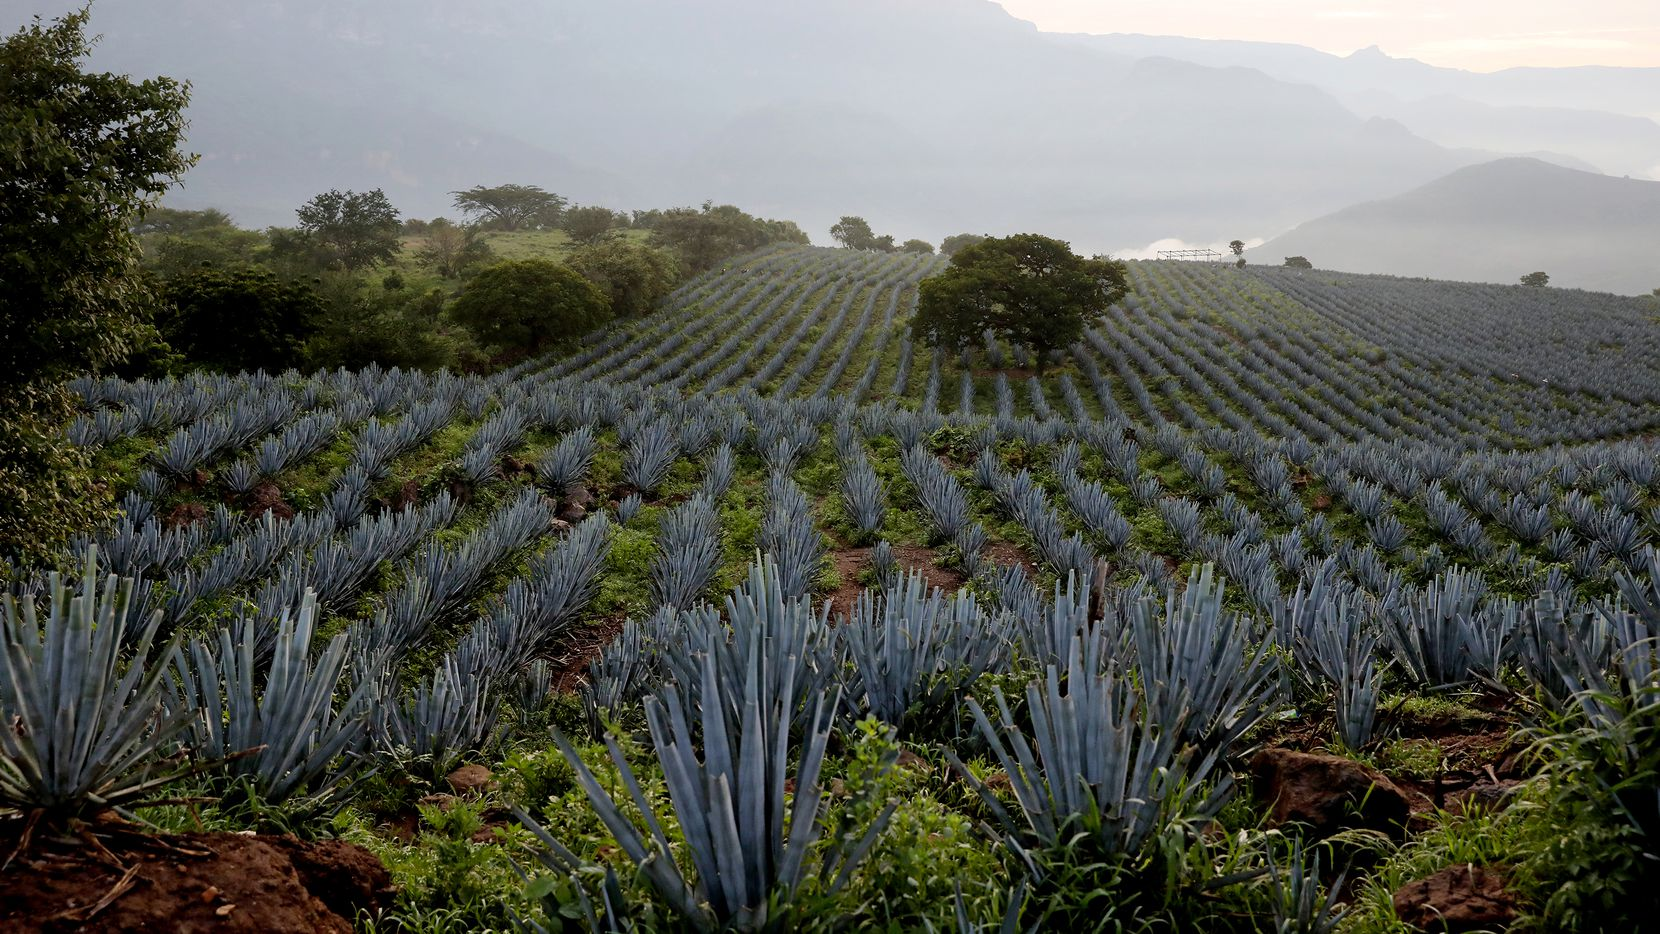 Blue agave fields with the Sierra Madre Occidental seen in the background on July 26 in San Martin de las Canas, Jalisco. San Martin del las Canas is just outside of the town of Tequila and is considered the cradle of blue agave.